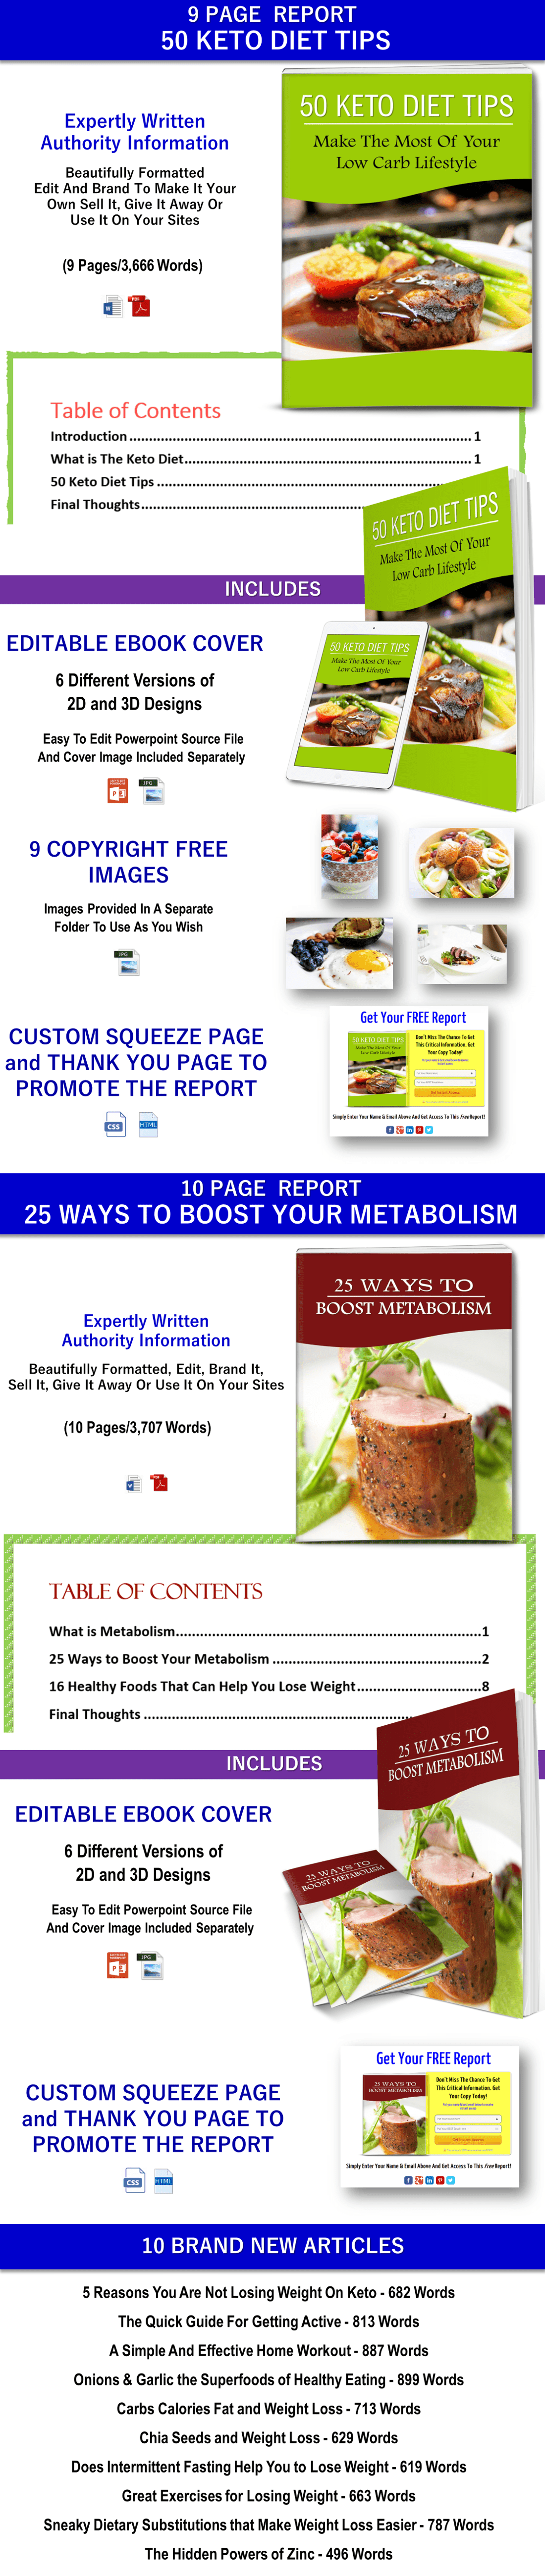 50 Keto Diet Tips and Metabolism PLR